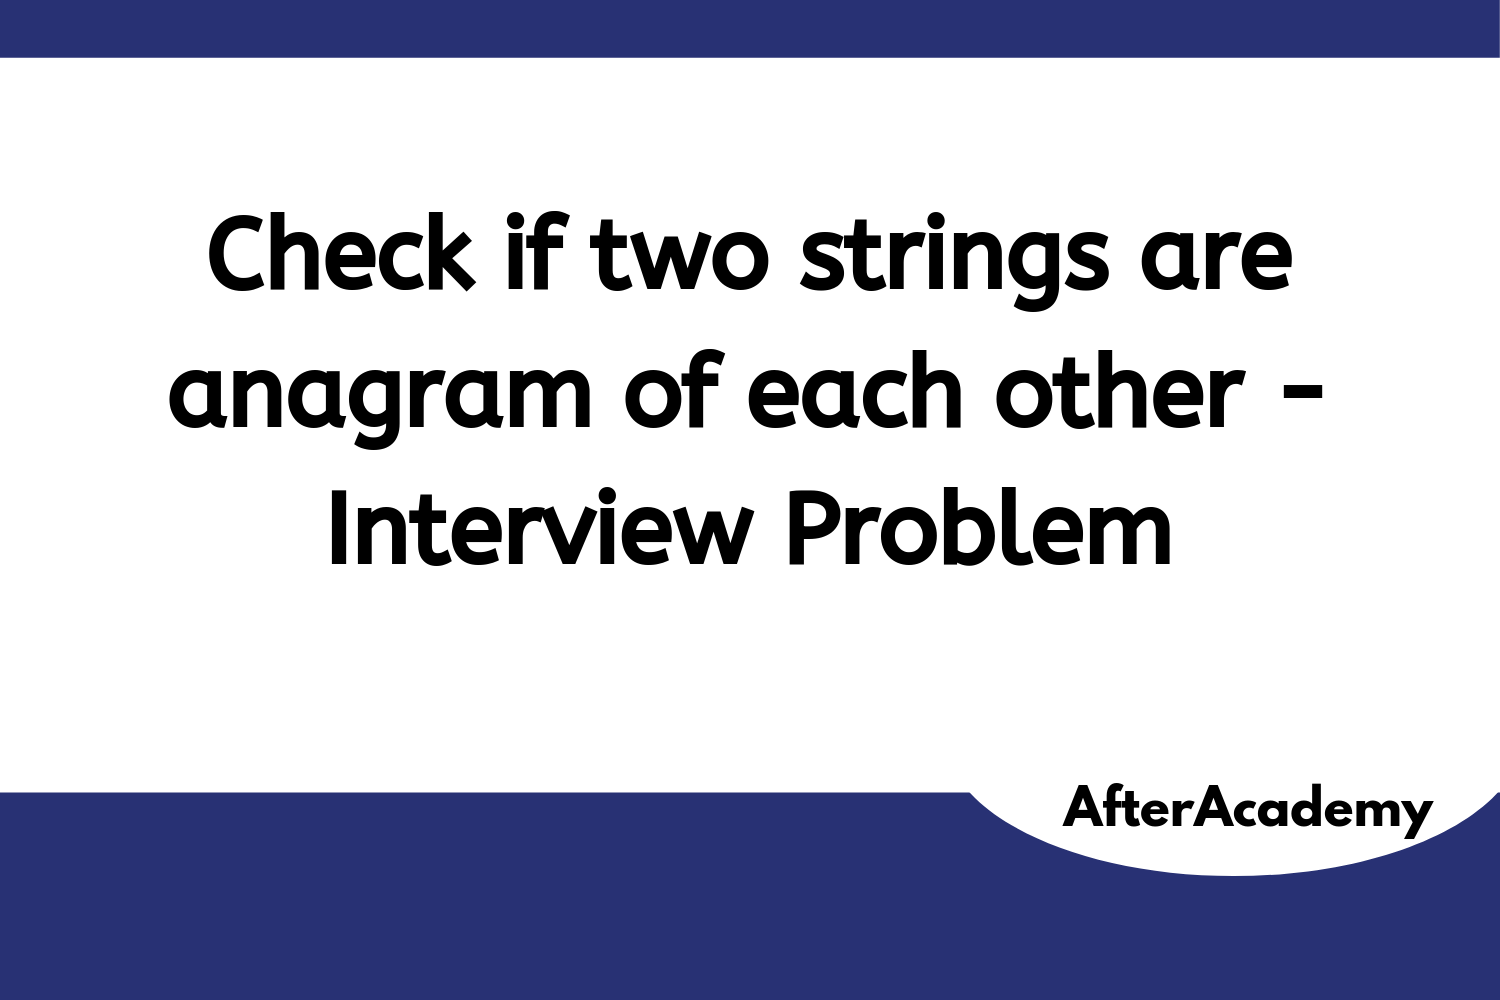 Check if two strings are anagrams of each other - Interview Problem